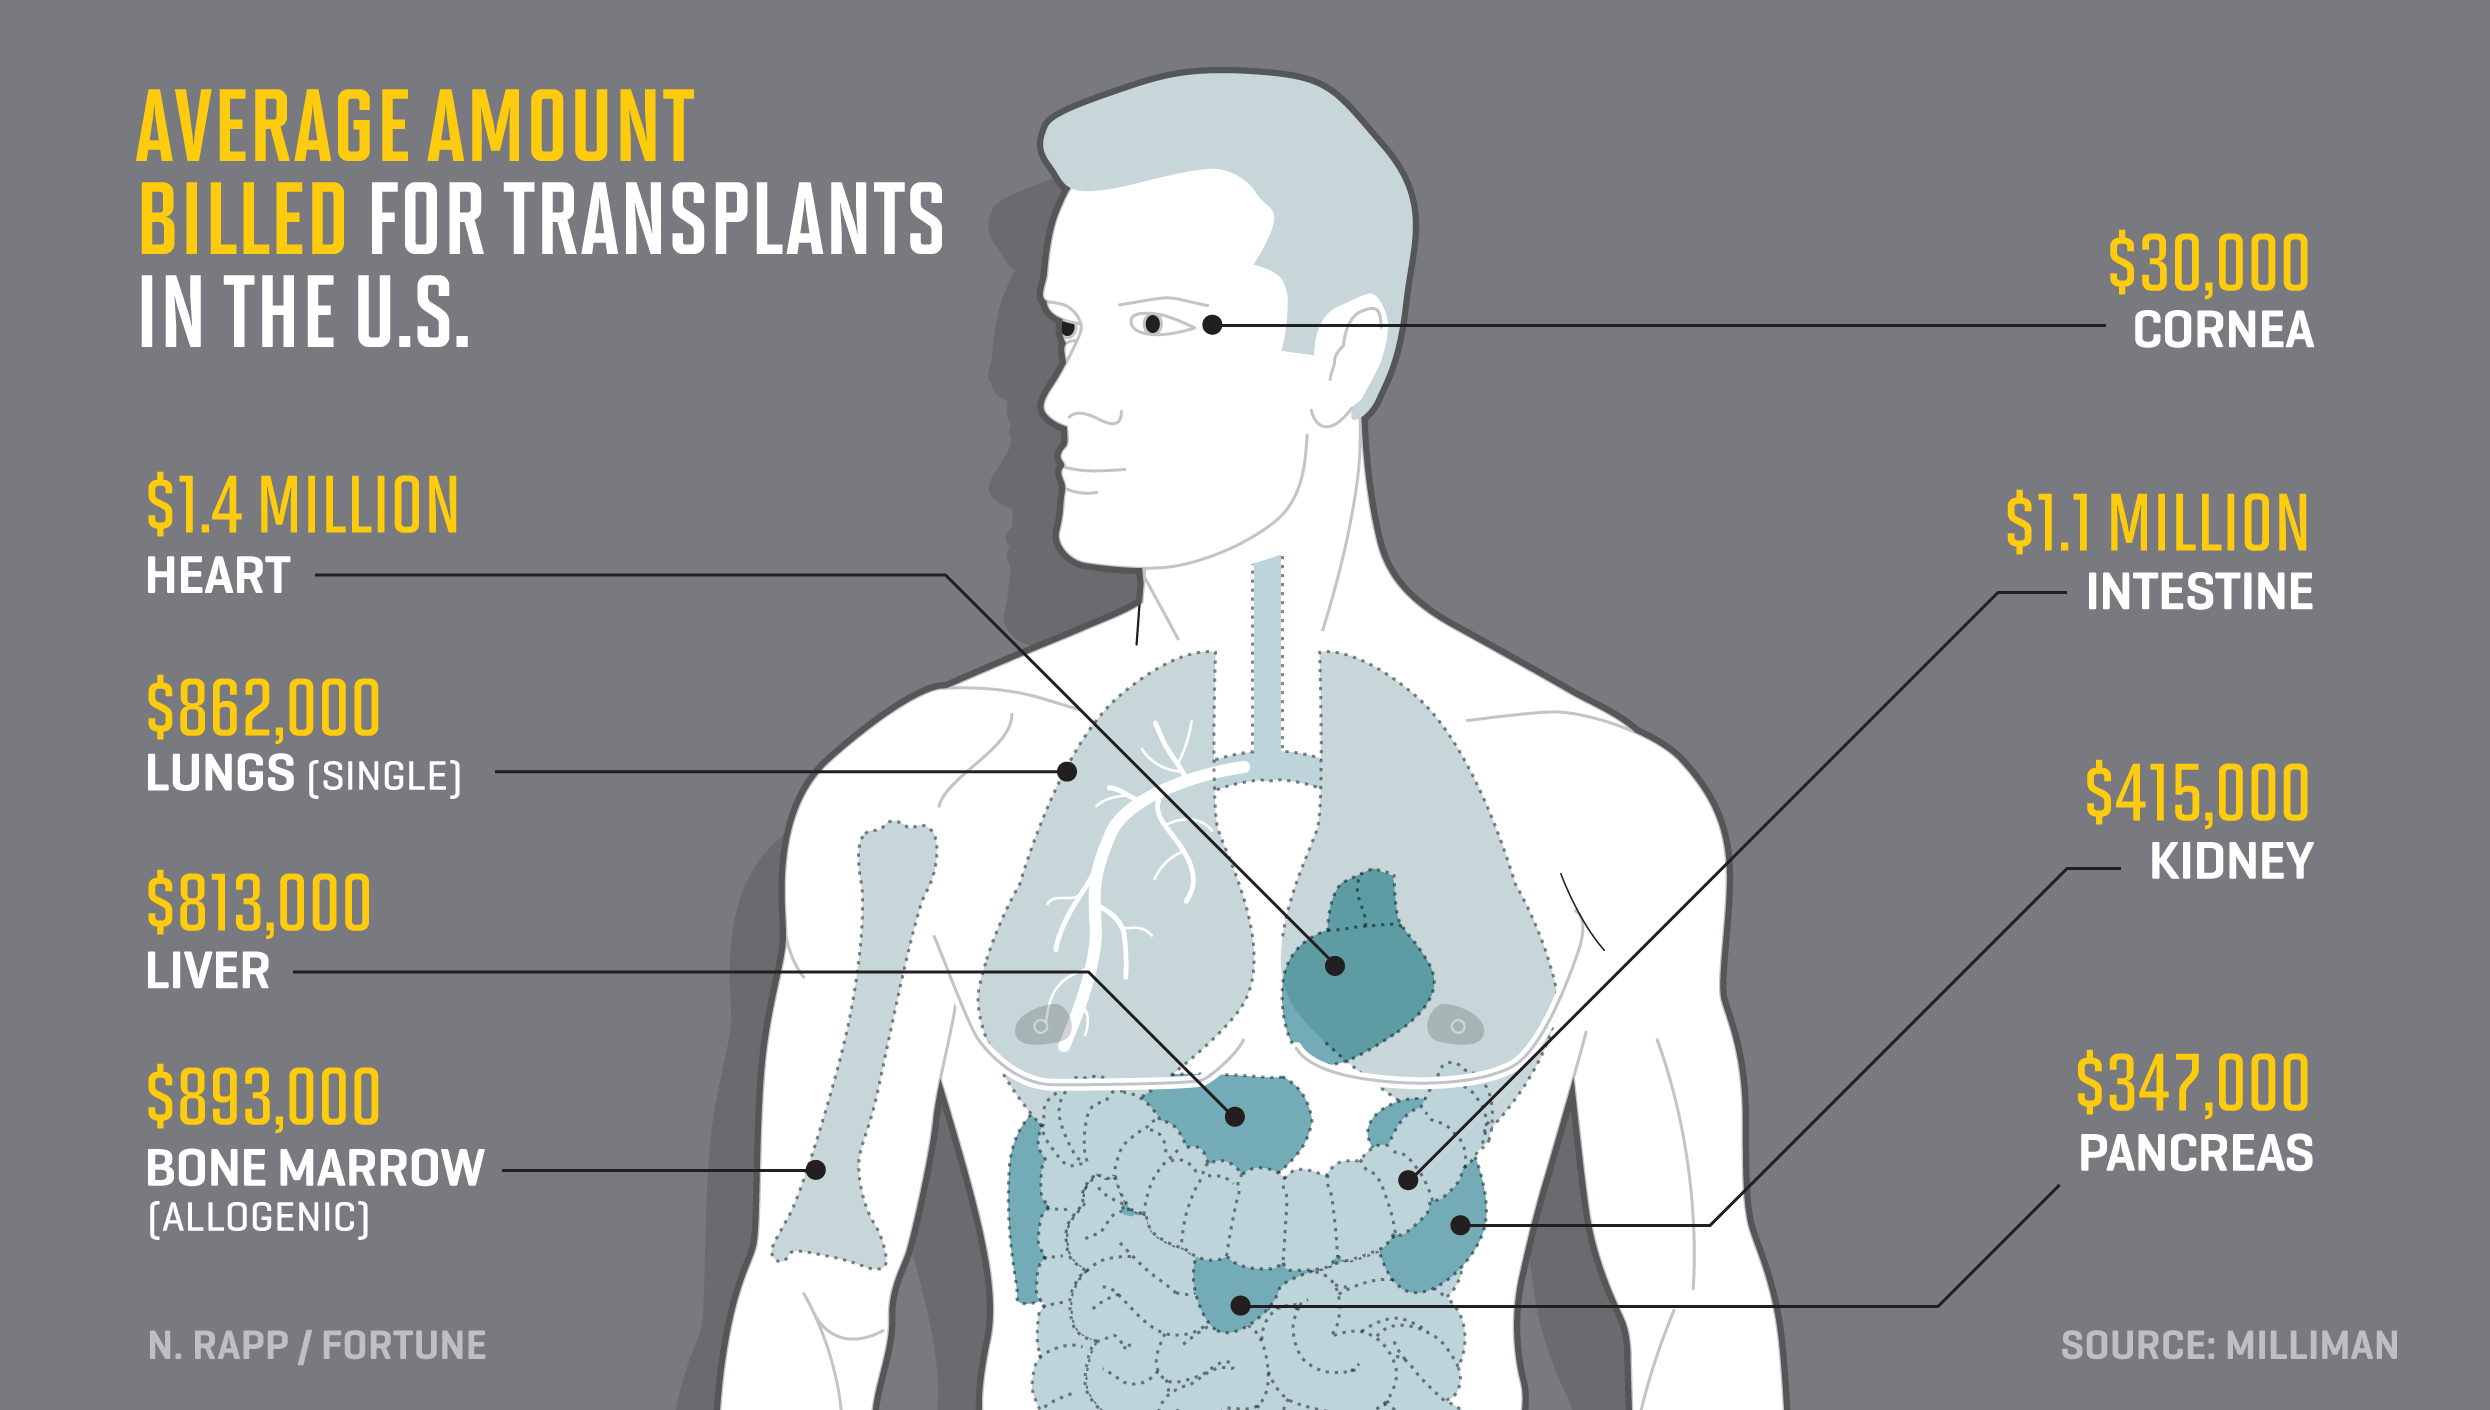 Here's What Every Organ in the Body Would Cost to Transplant | Fortune